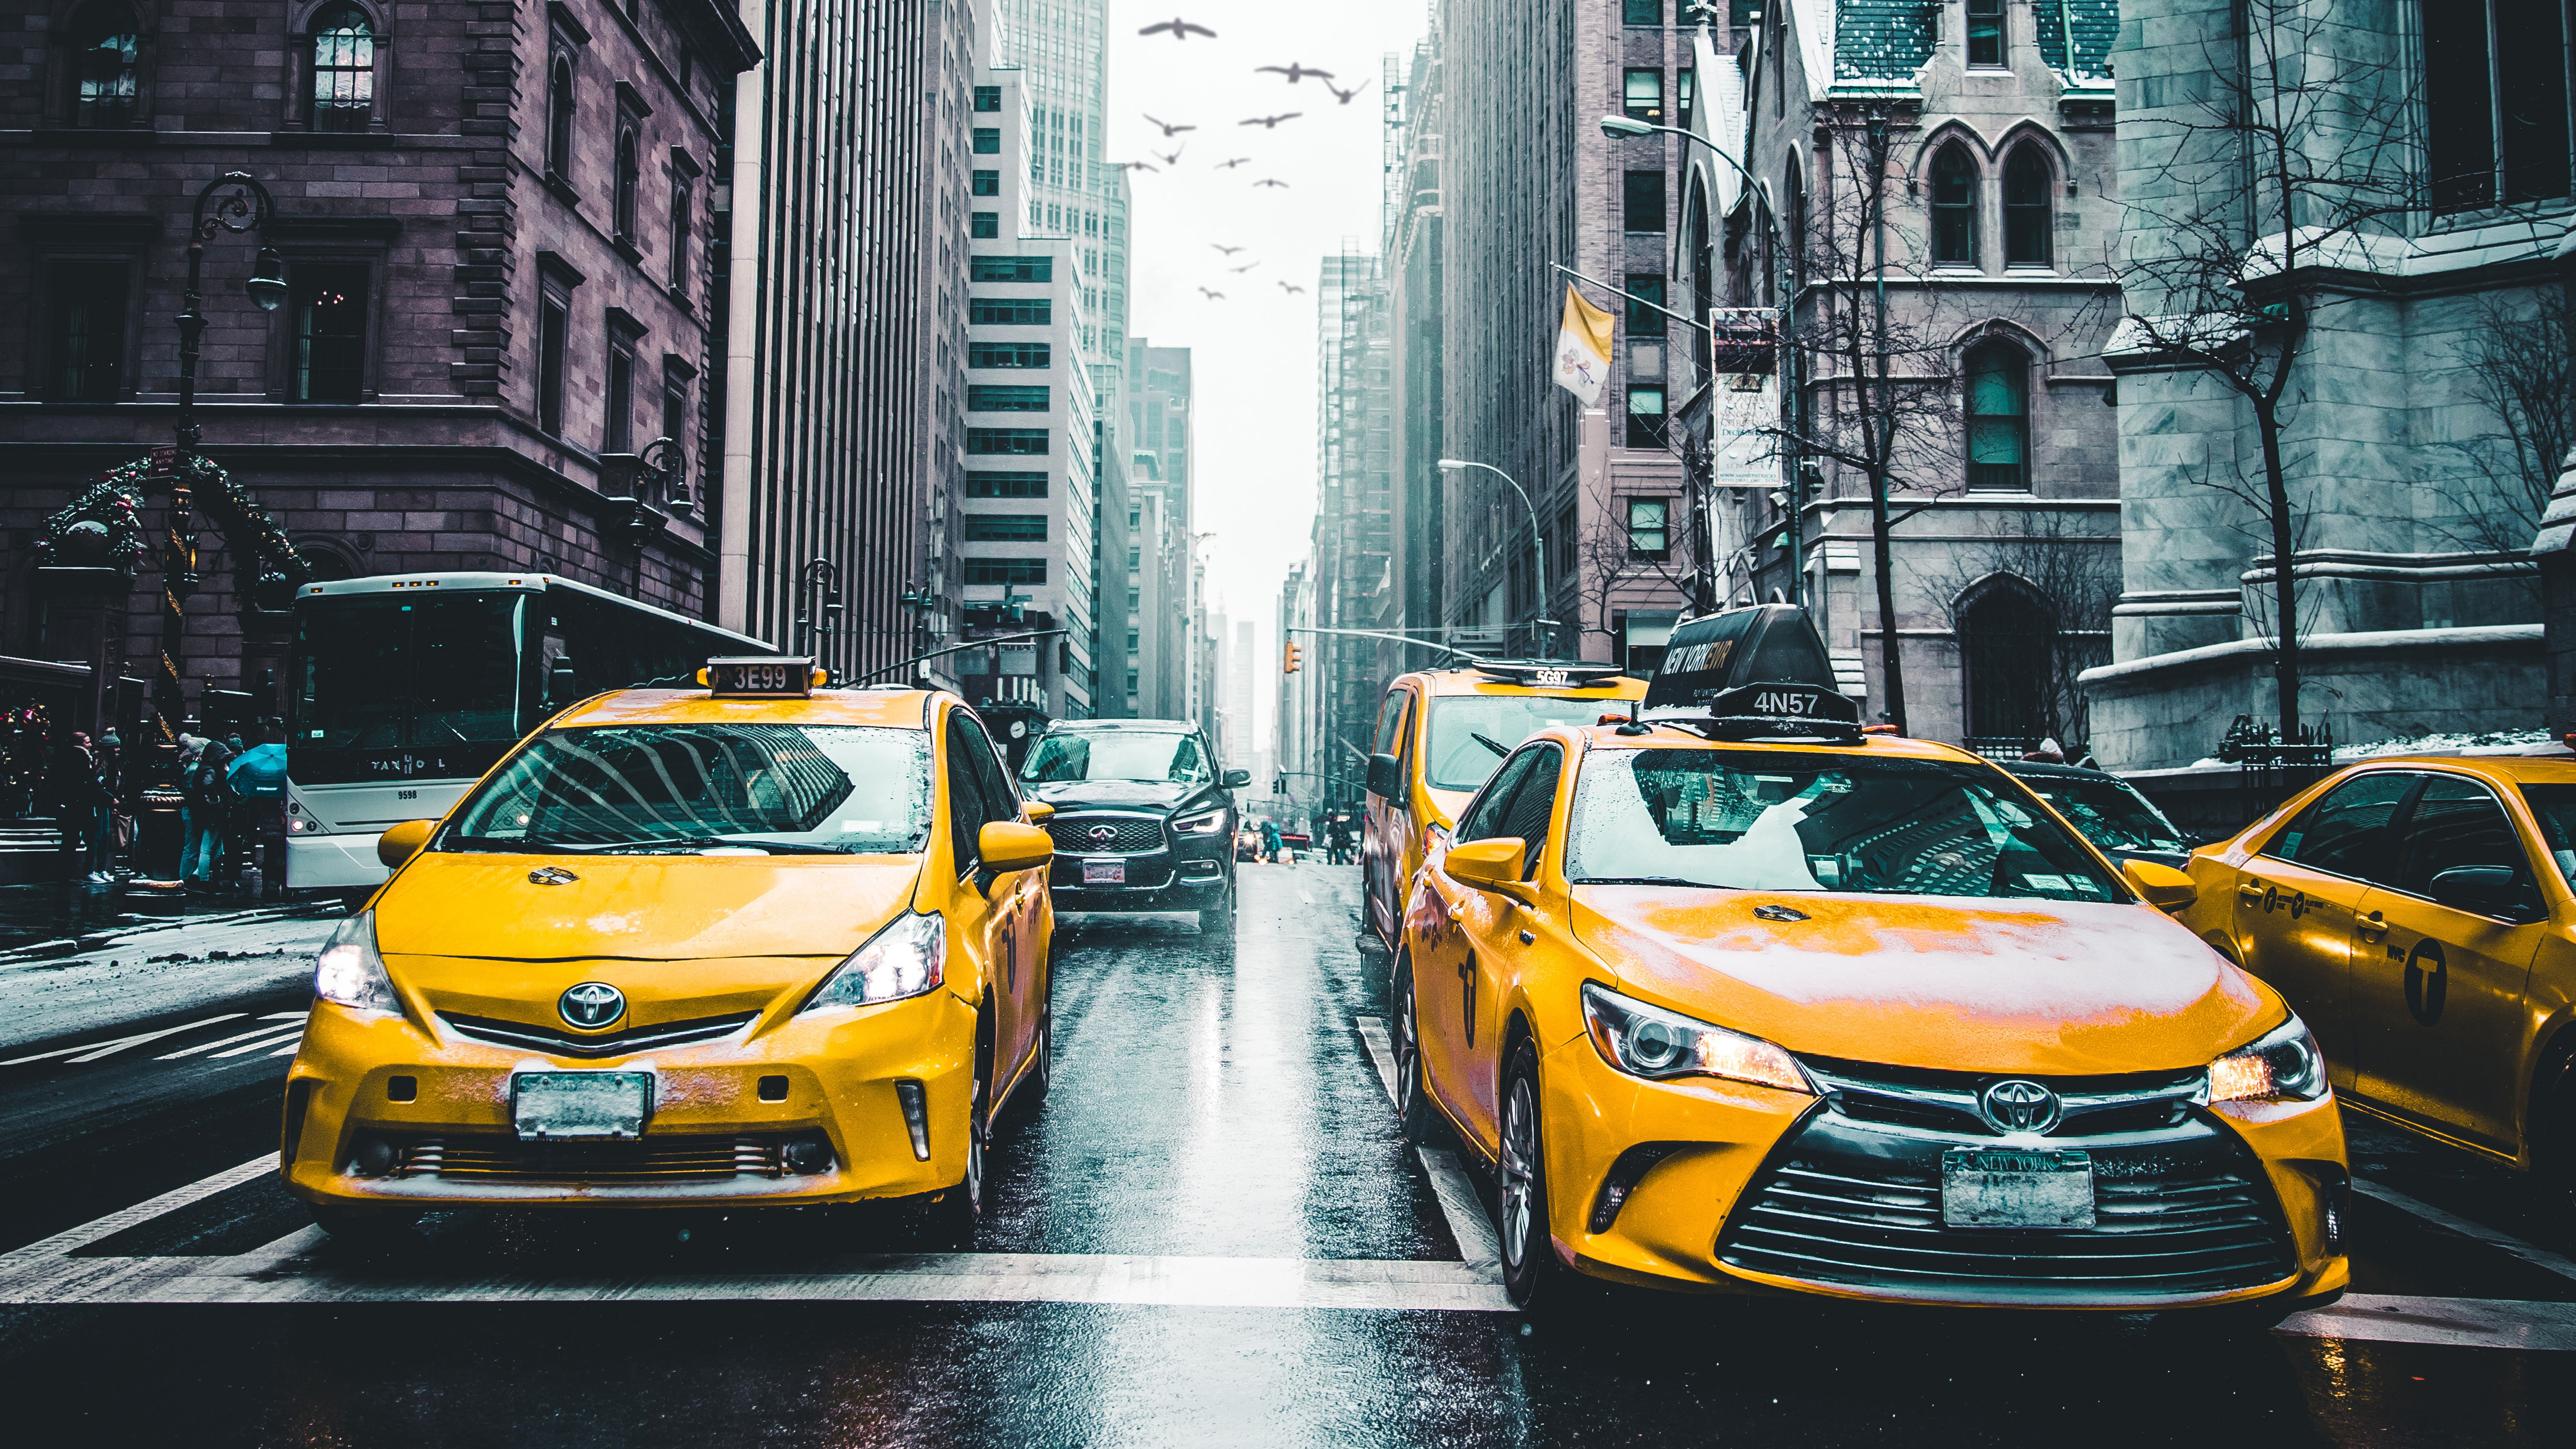 Car Logo Wallpapers For Mobile New York Taxi Wet Roads Tall Buildings 5k Hd Photography